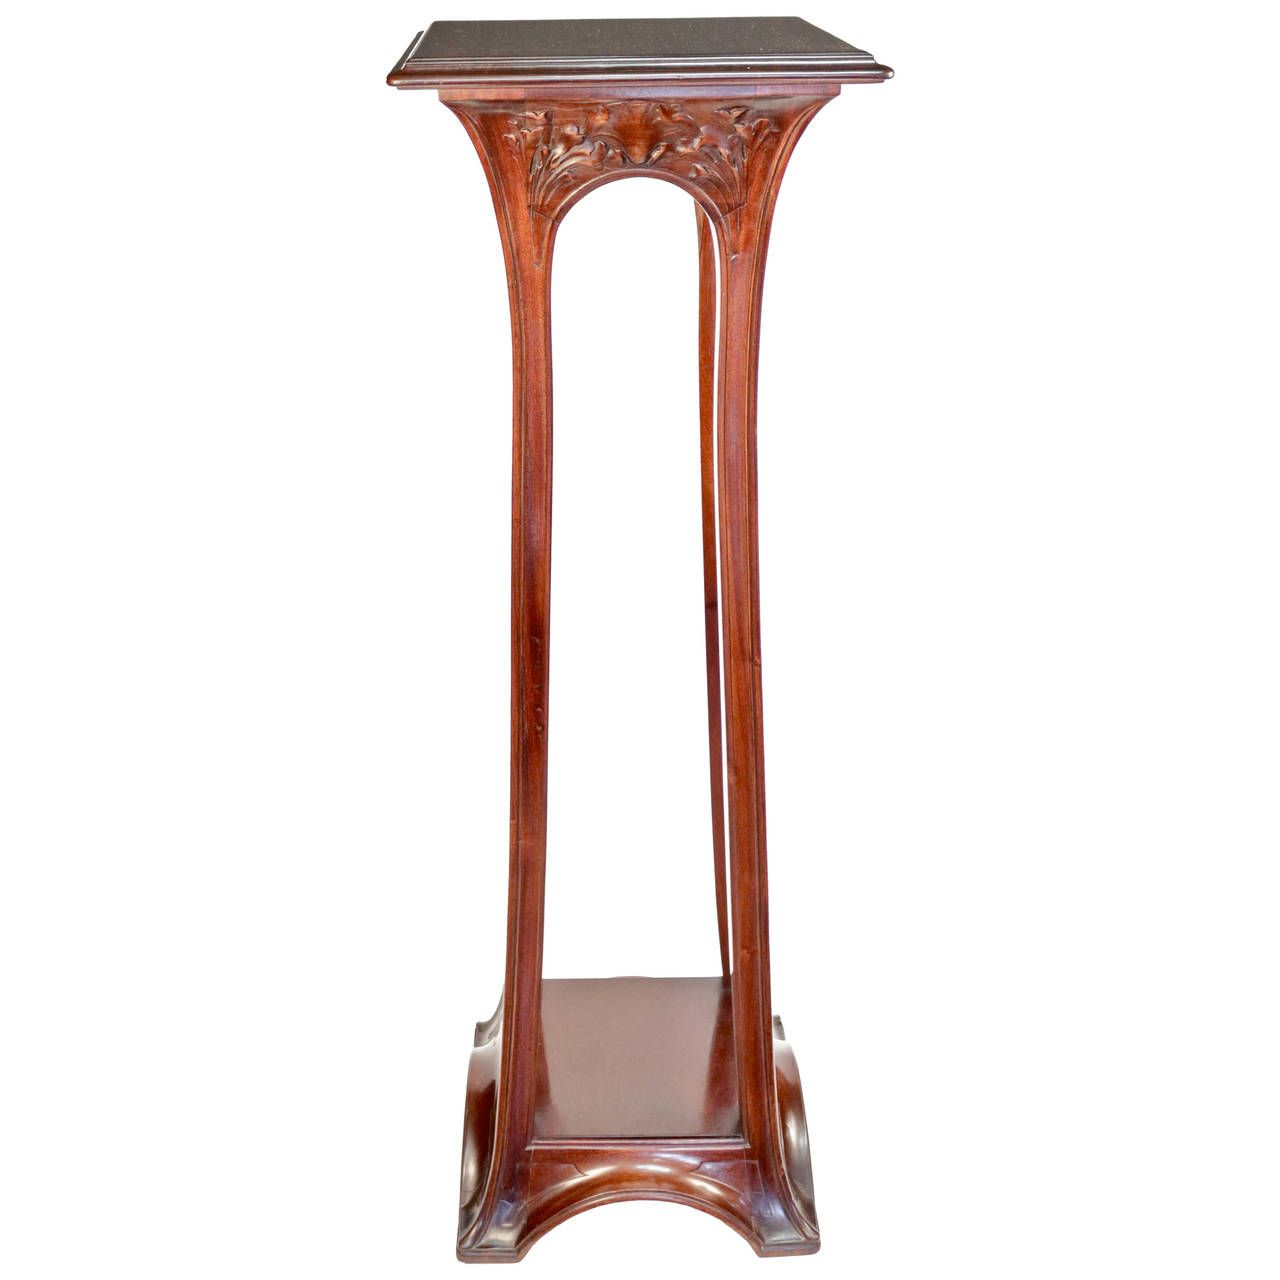 modern art nouveau furniture. Louis Majorelle Art Nouveau Stand | From A Unique Collection Of Antique And Modern Pedestals At Furniture R